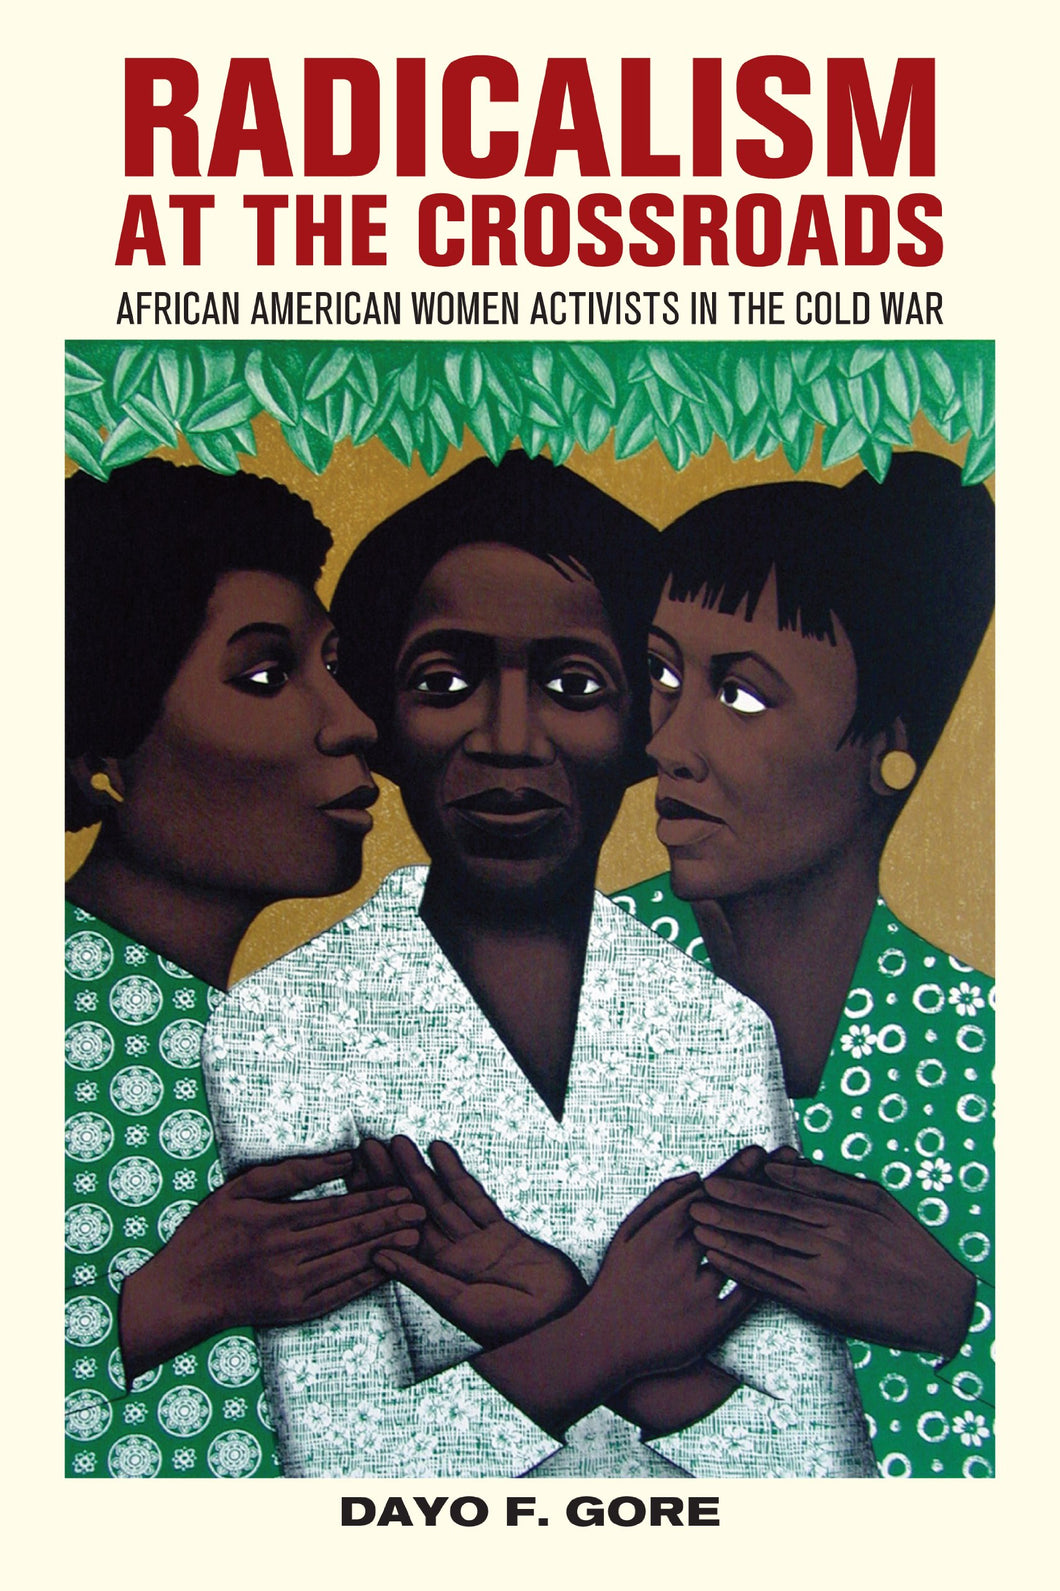 Radicalism at the Crossroads: African American Women Activists in the Cold War by Dayo F. Gore